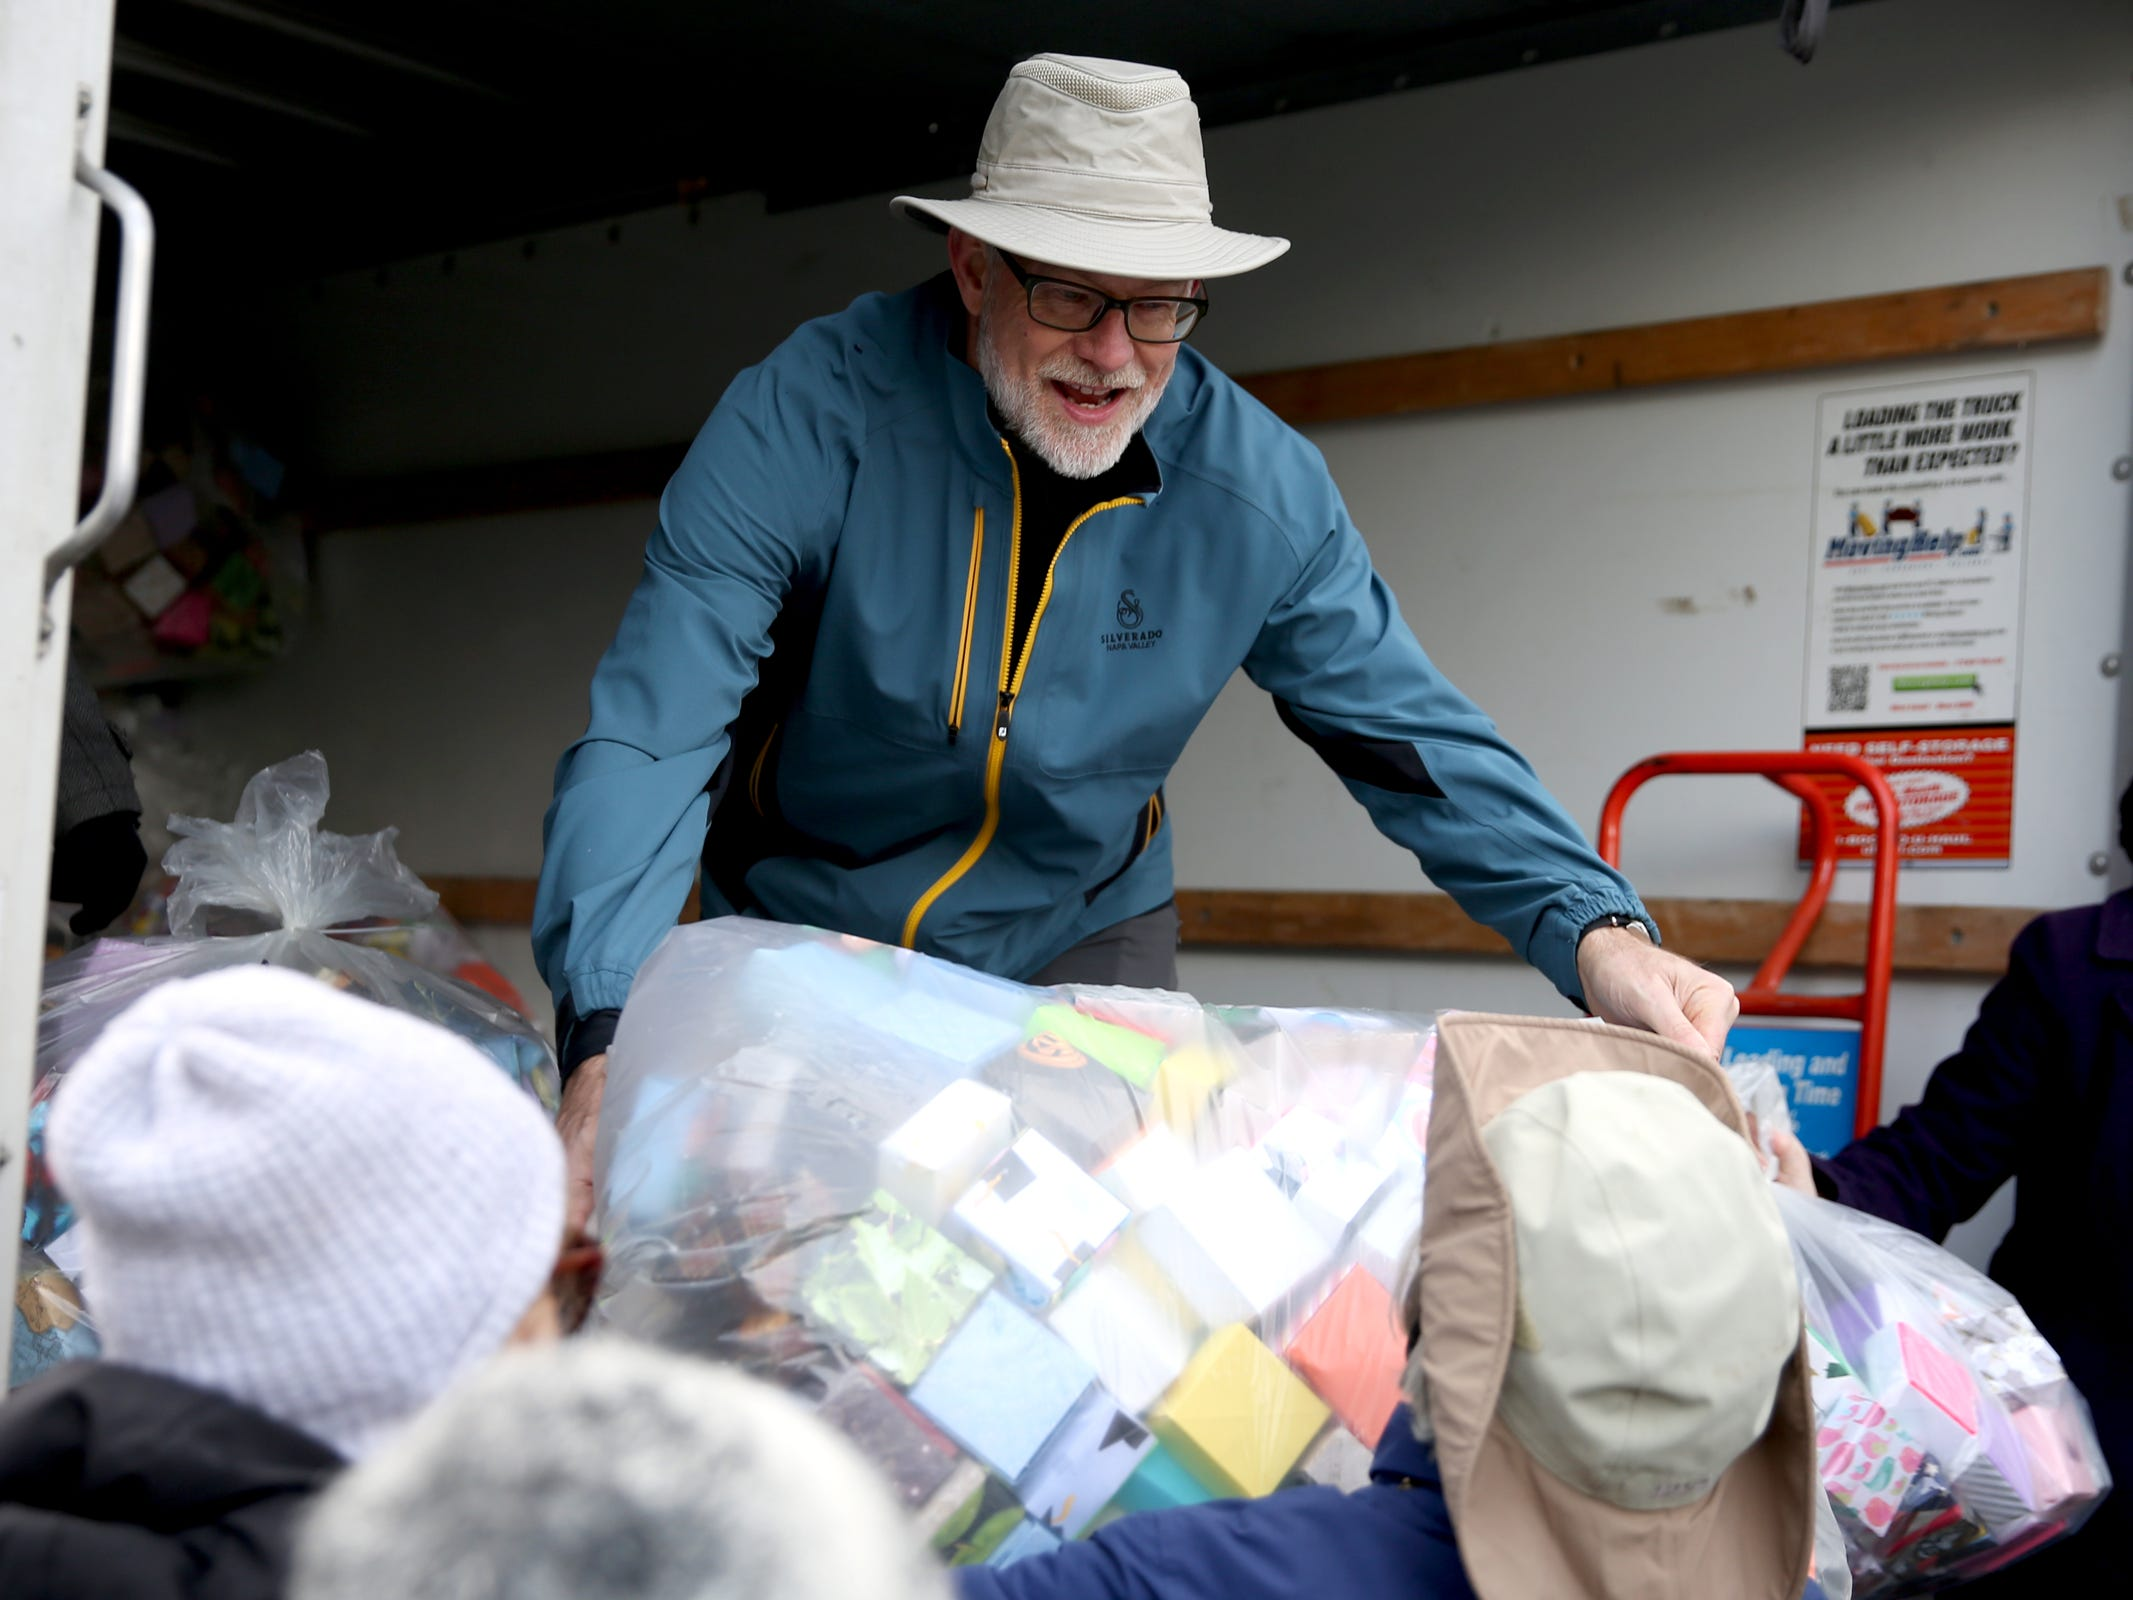 Richard Carroll of Lake Oswego, helps unload bags of 37,000 handmade origami boxes, representing victims of gun violence, that will be delivered and display at the Oregon State Capitol in Salem on Friday, Feb. 15, 2019. The Soul Box Project, started by Portland artist Leslie Lee, aims to reveal the enormity of the gun fire epidemic.